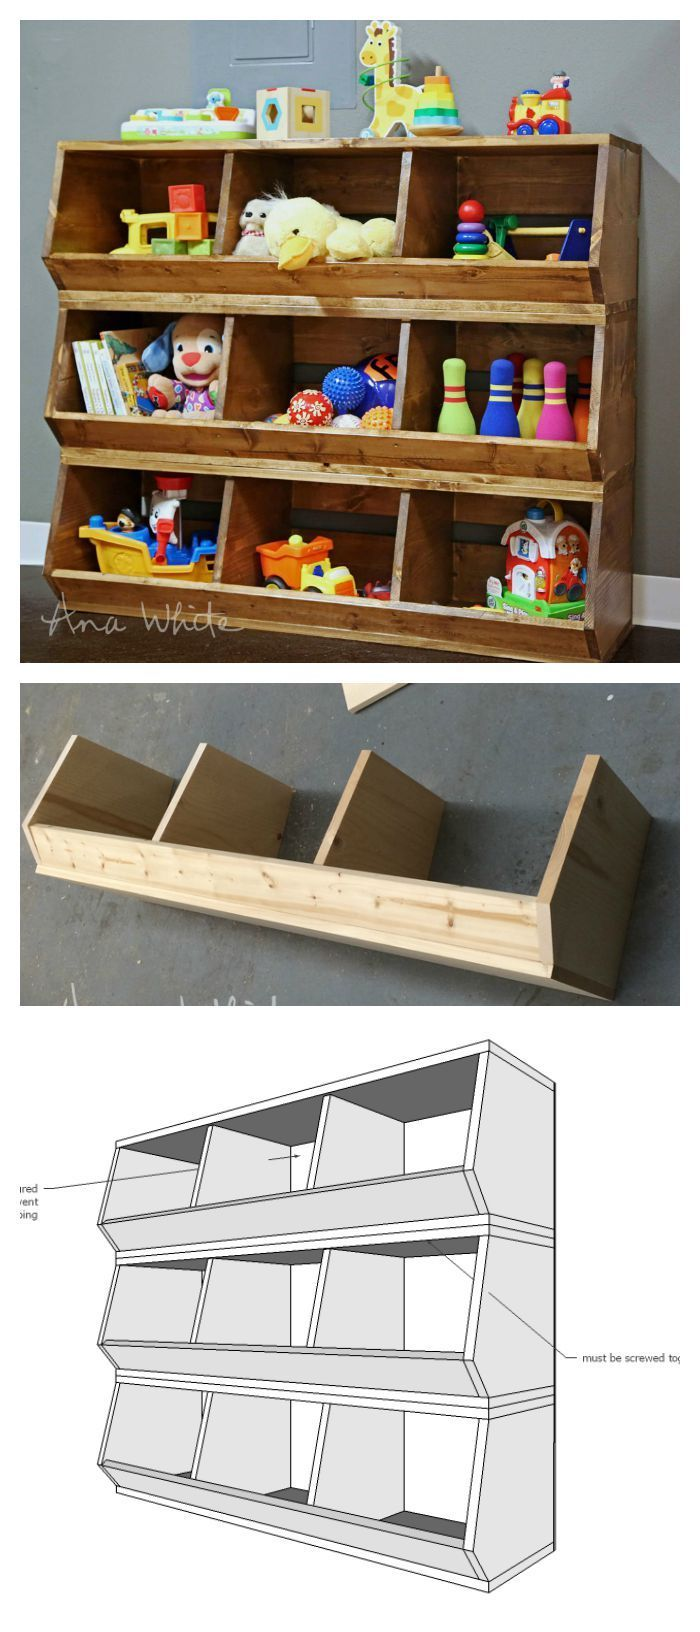 Toy Bin Organizer Kids Childrens Storage Box Playroom: Build These Bulk Bins Out Of 1x12 Boards! Easiest Plans